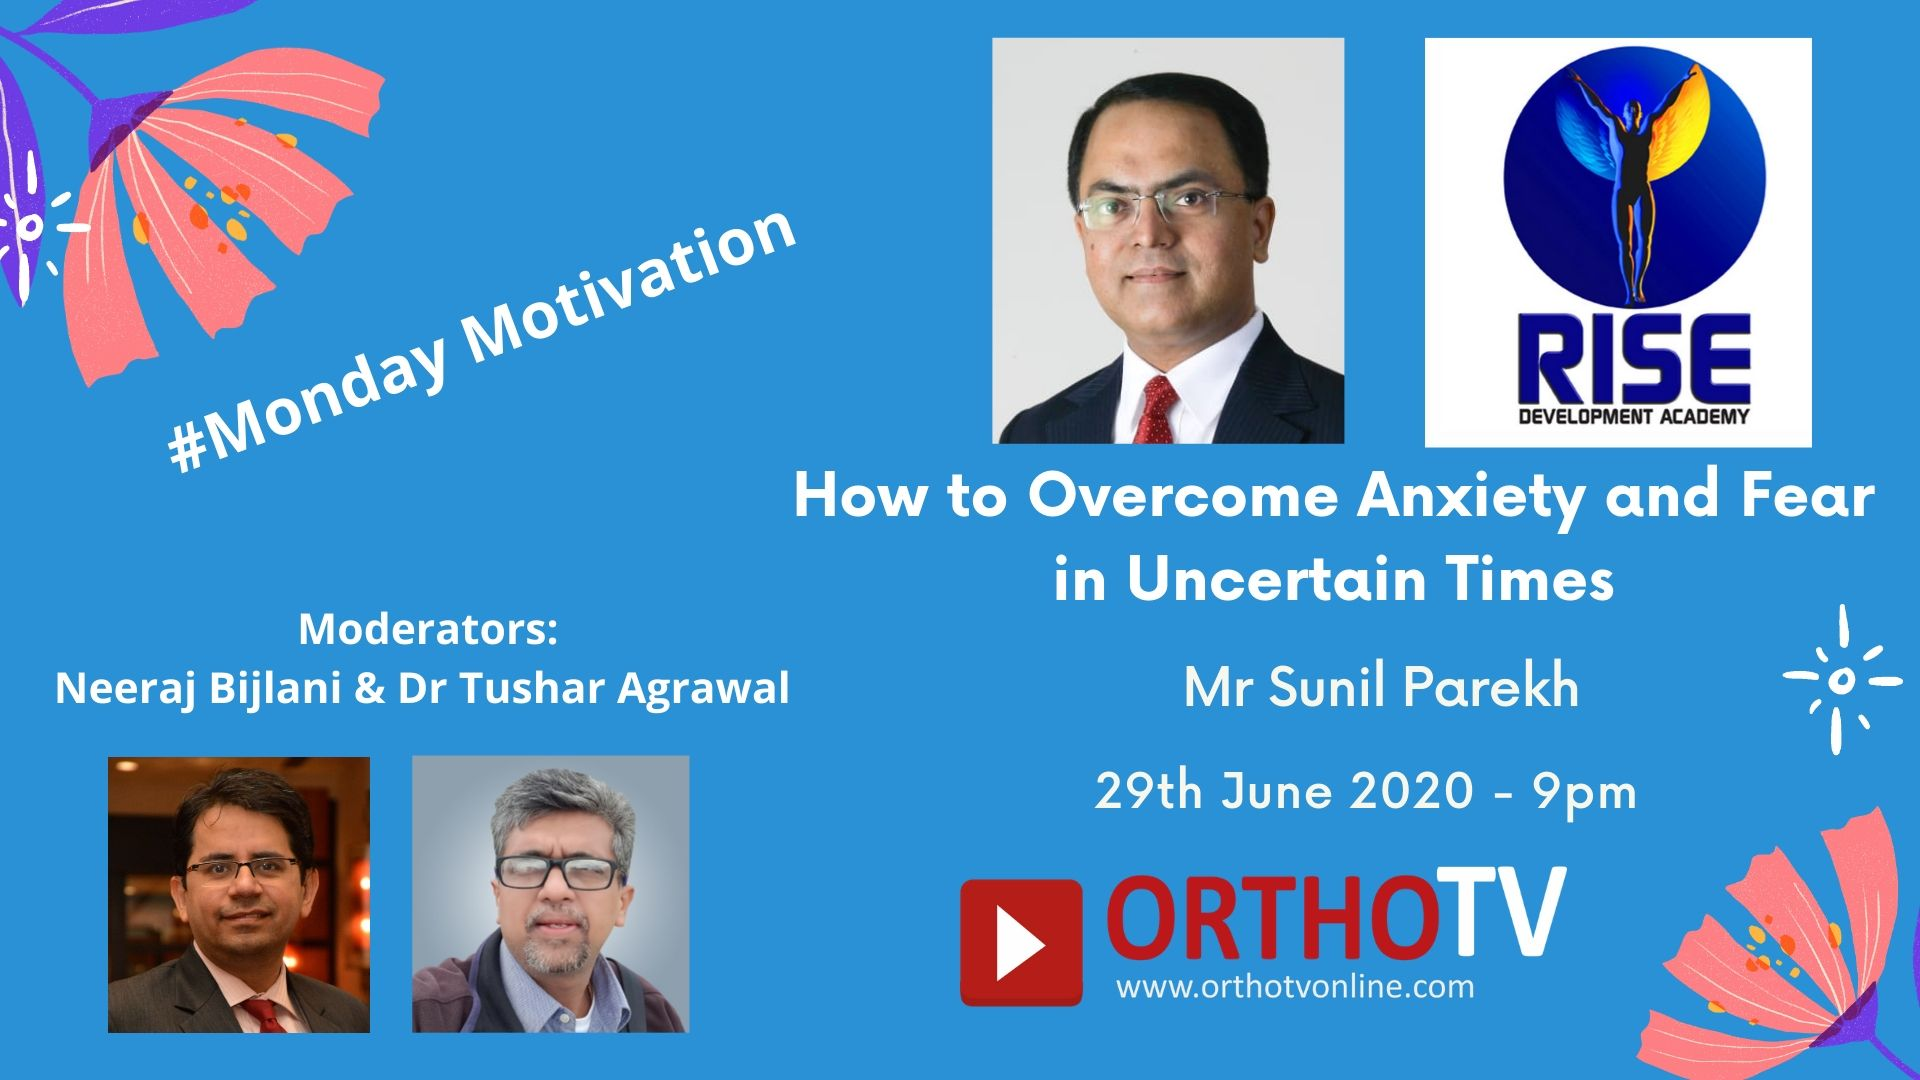 - motivation sunil parekh - Monday Motivation : How to overcome stress and anxiety during uncertain times – Mr Sunil Parekh